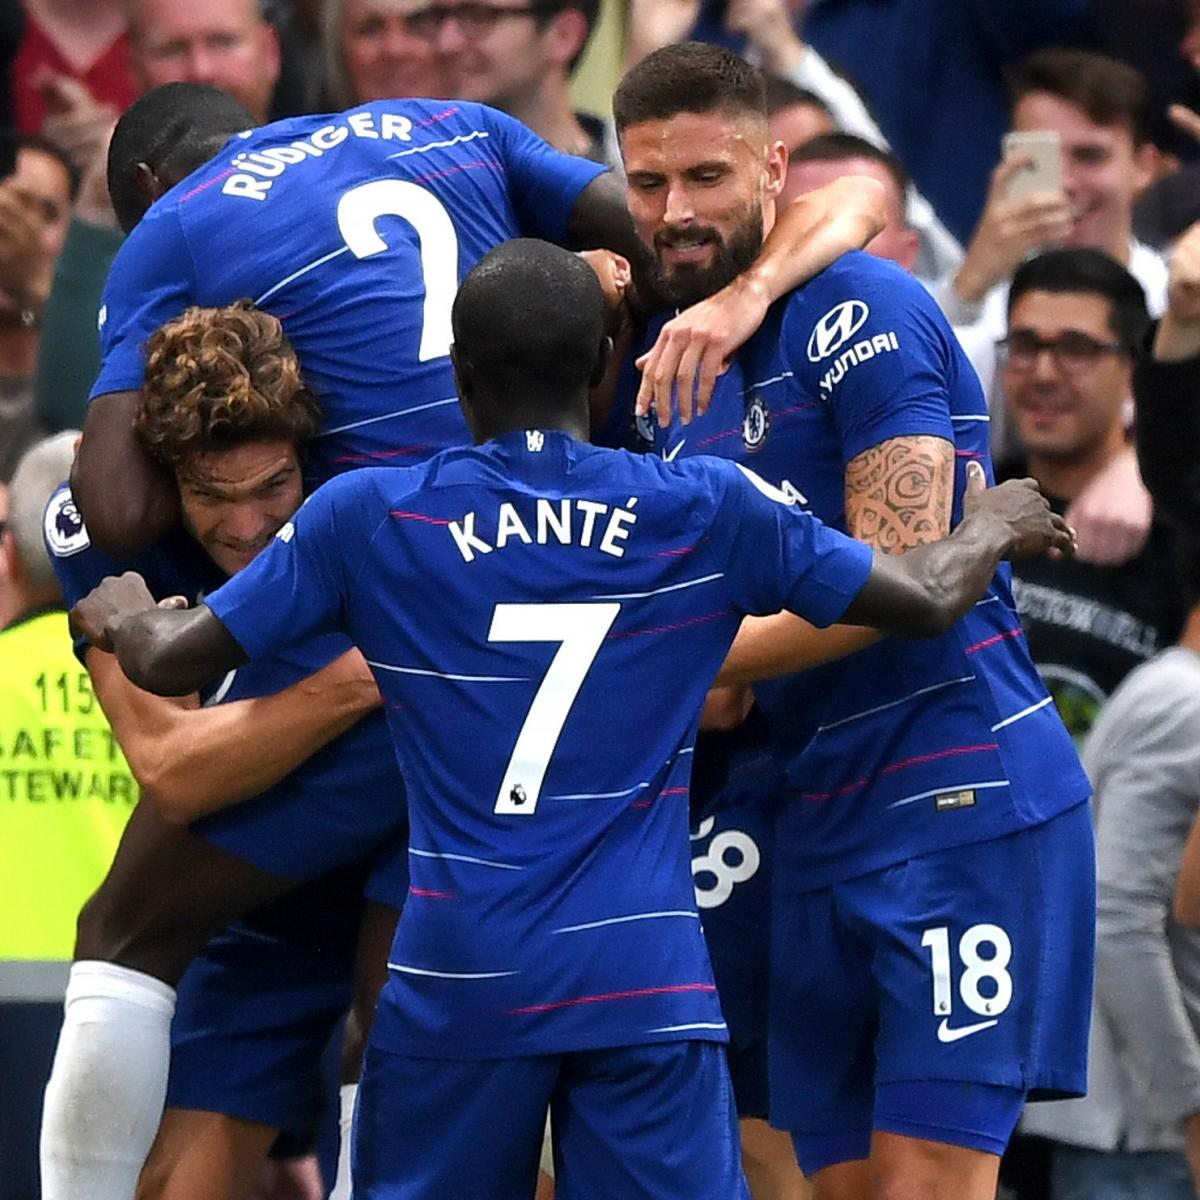 Tottenham 3 Fulham 1 Match Highlights Harry Kane Scores: EPL Table: 2018 Standings After Saturday's Week 2 Results